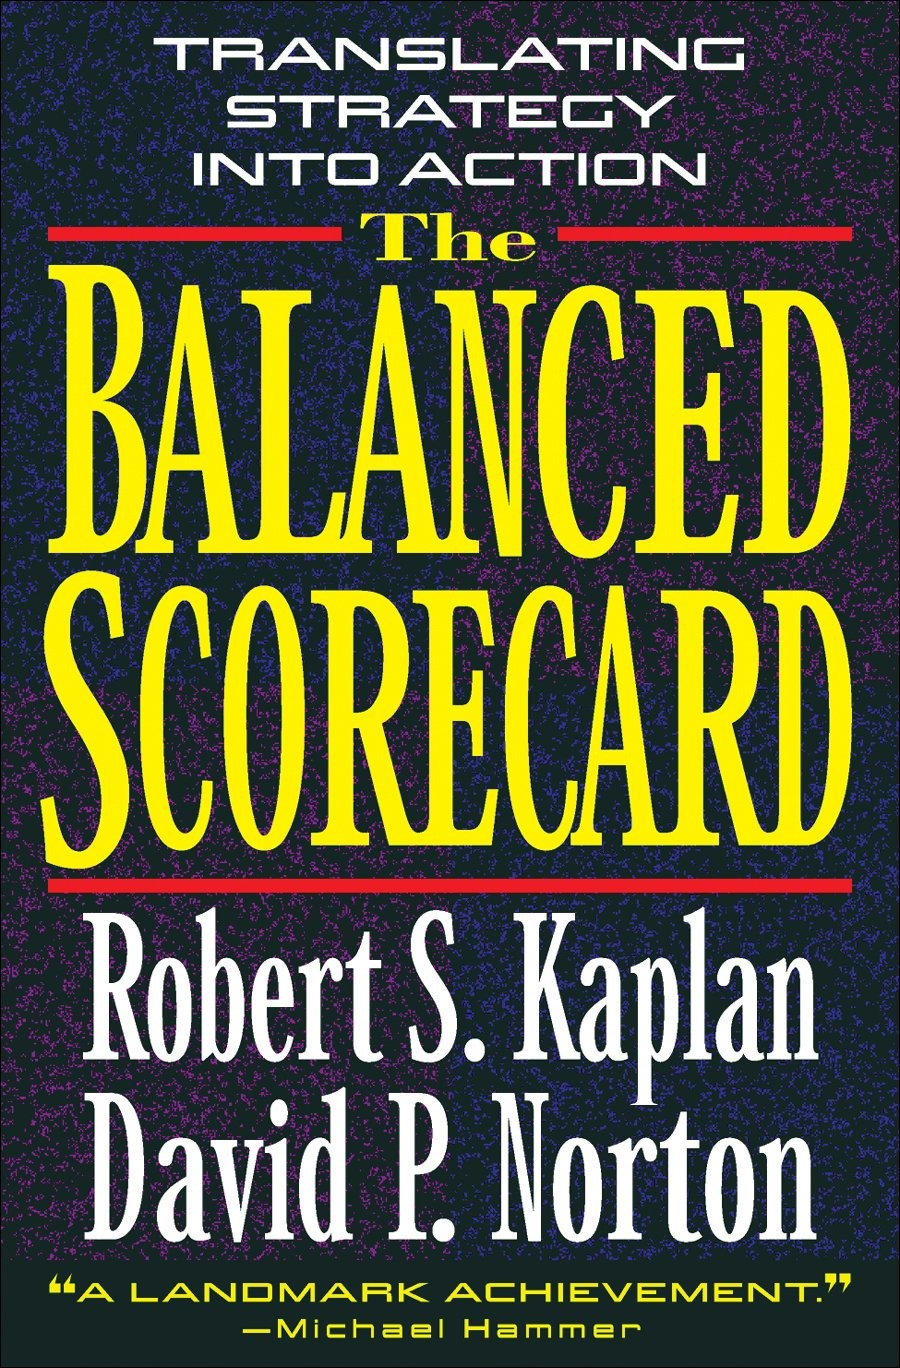 The original Balanced Scorecard book that started it all